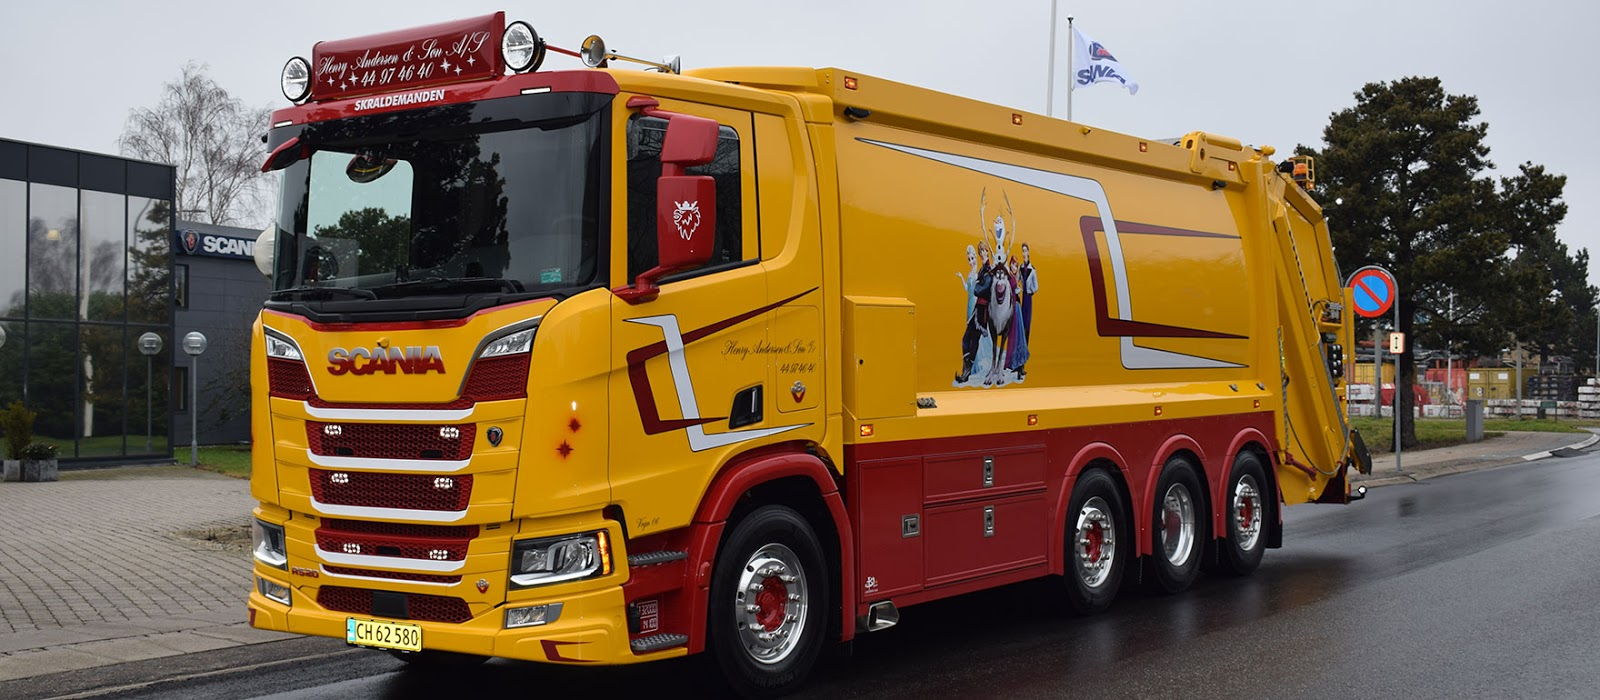 b956c381 ... Henry Andersen & Søn's new refuse truck is certain to raise a few  eyebrows along pickup routes. Owner Jais Andersen's latest eyecatcher is a  V8 Scania R ...